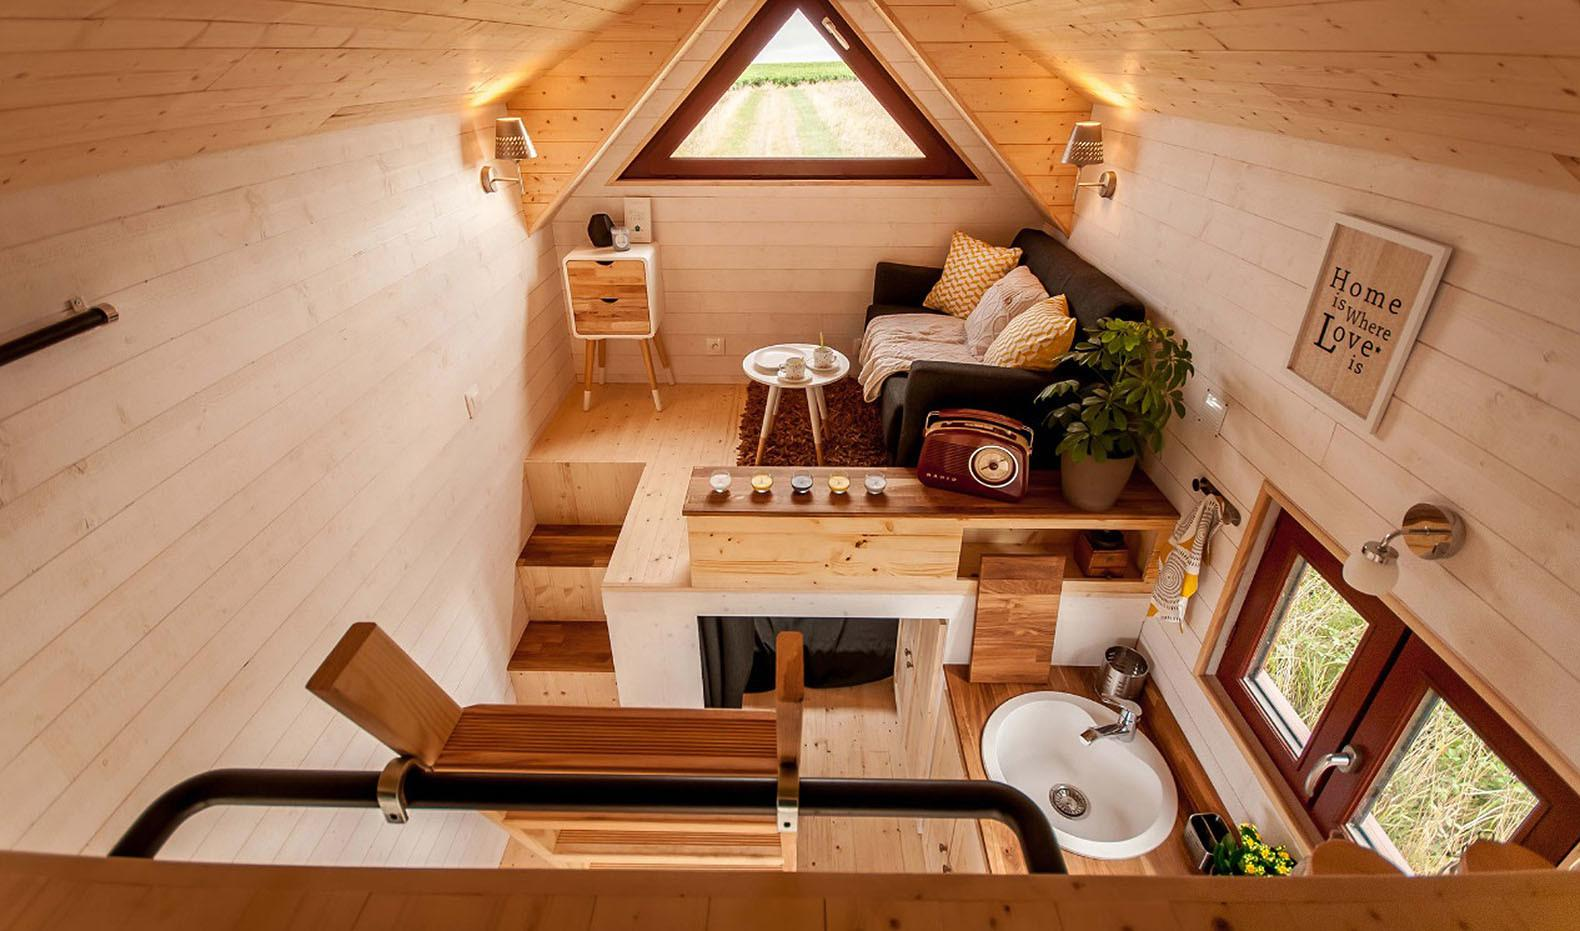 Fully Furnished Odyss Tiny House France Easily Fits